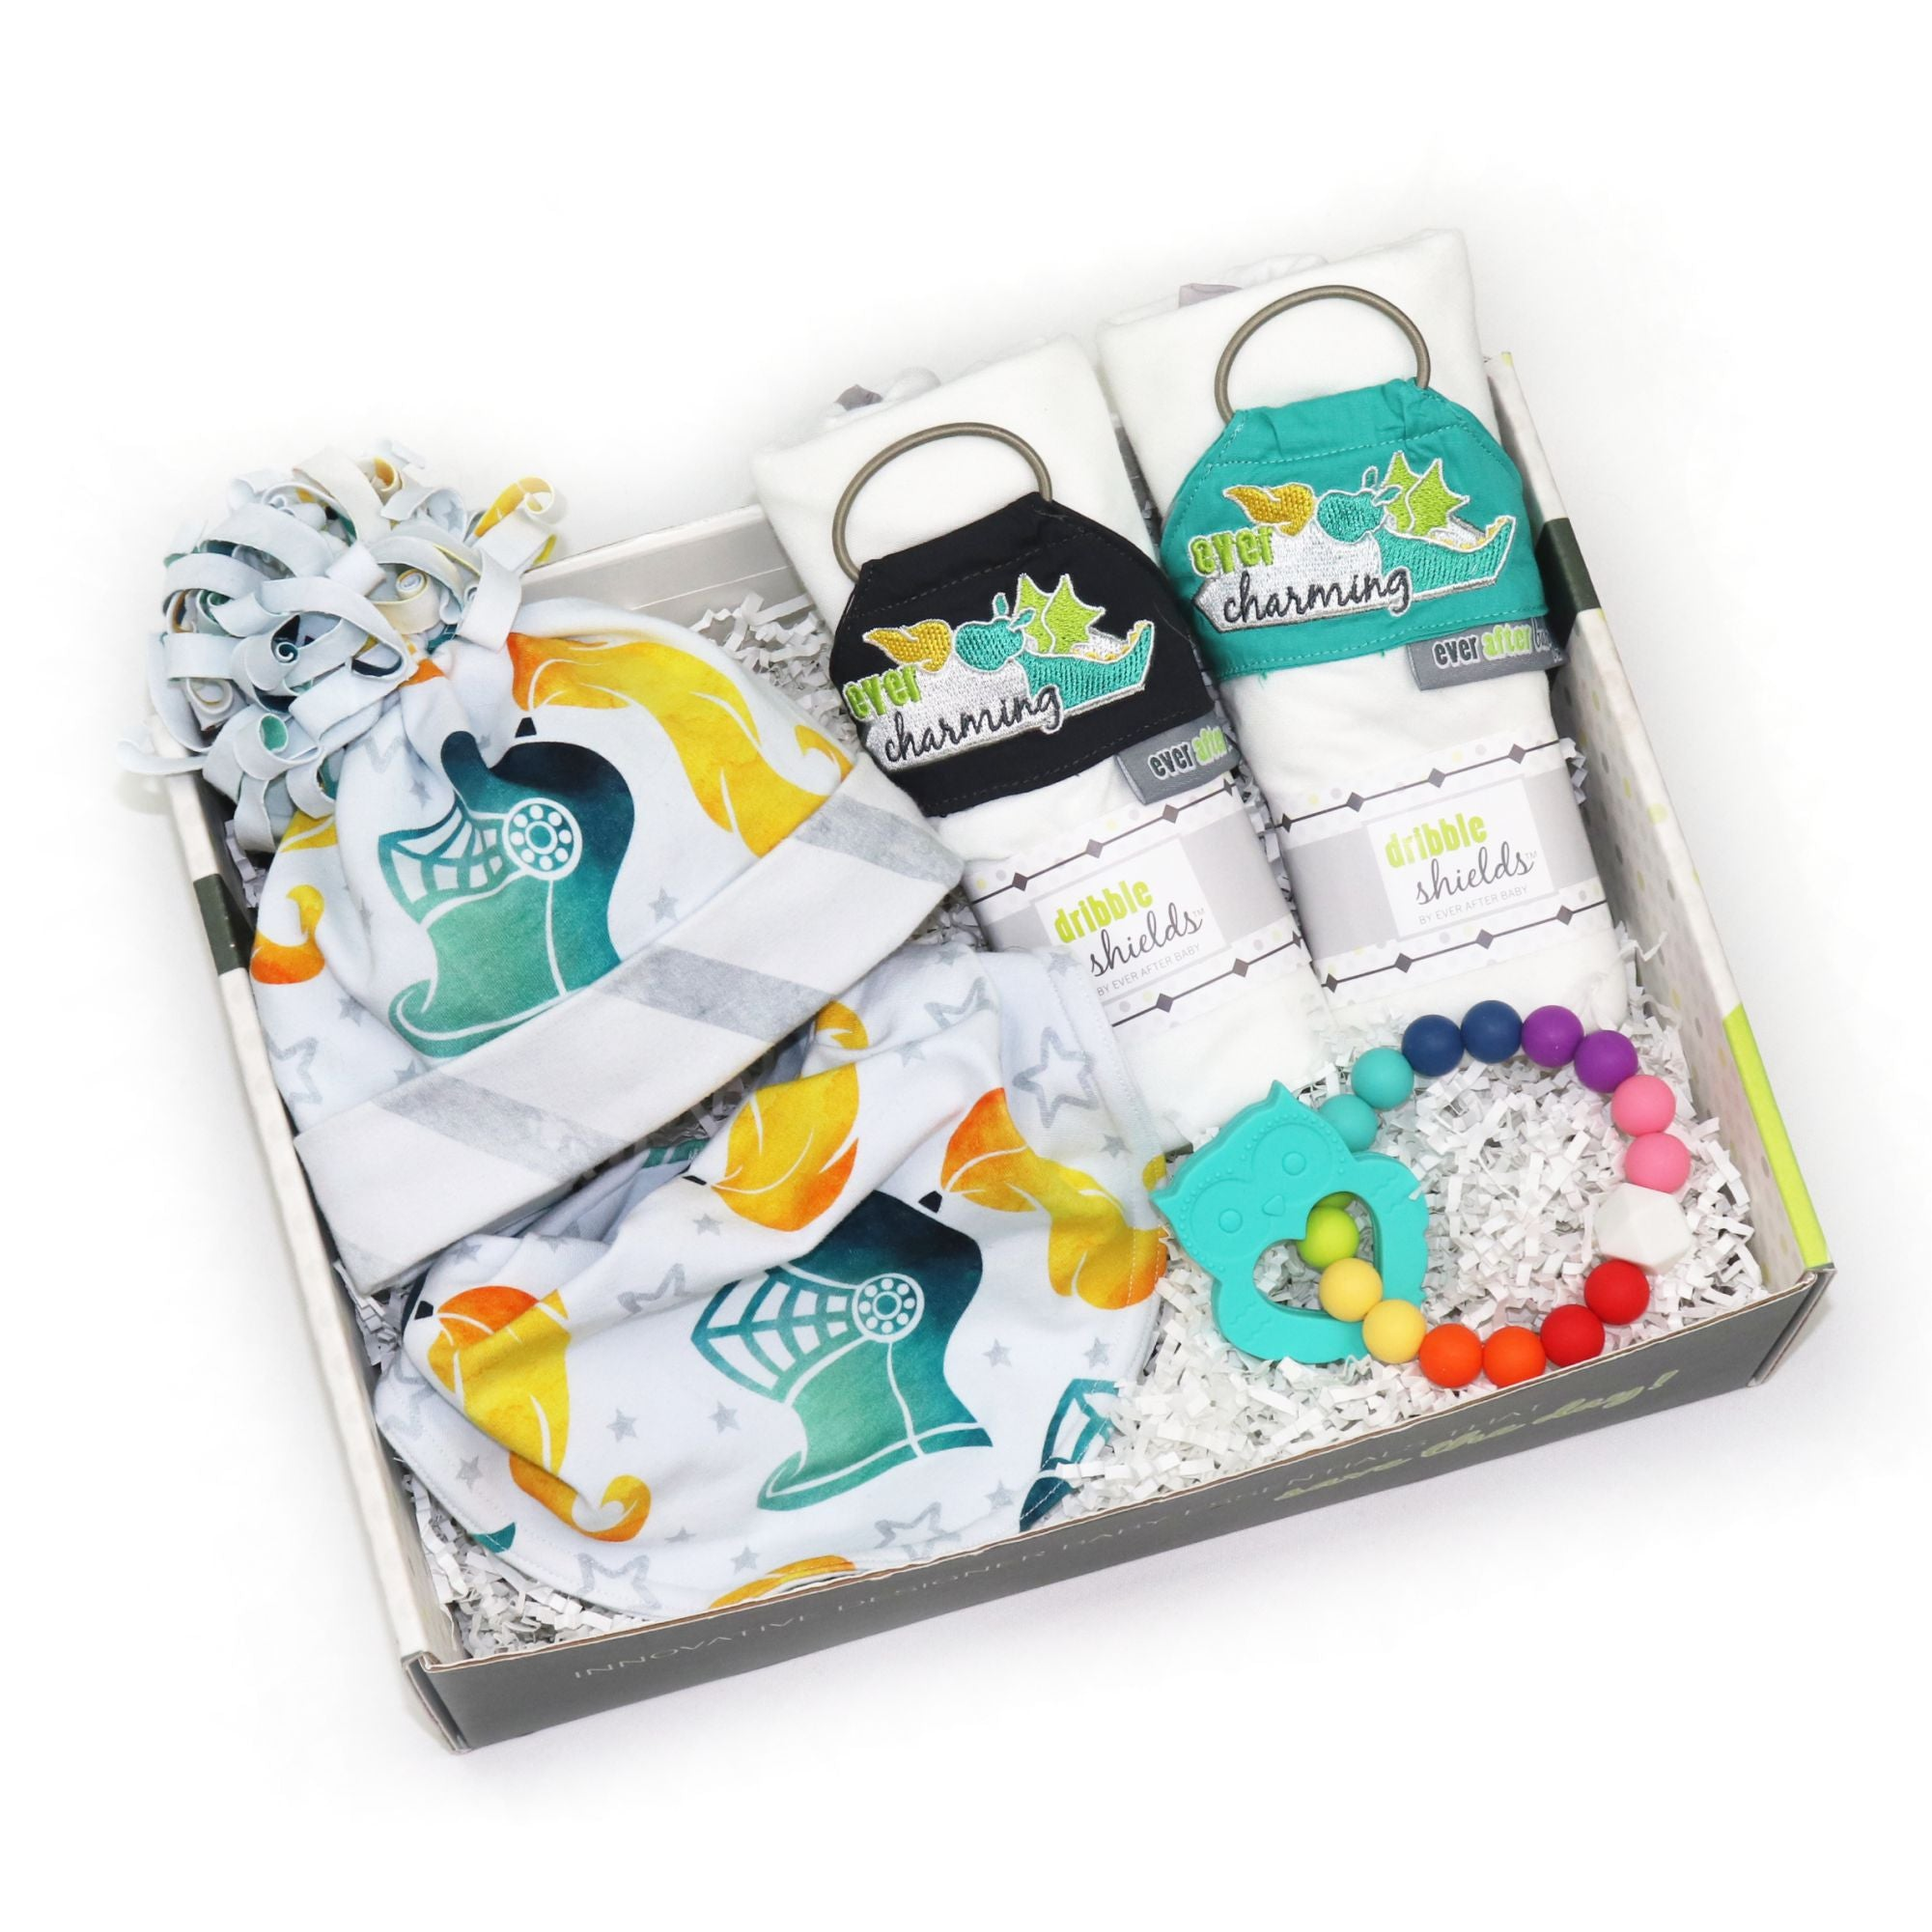 Royal Style Baby Box in Charming Knight